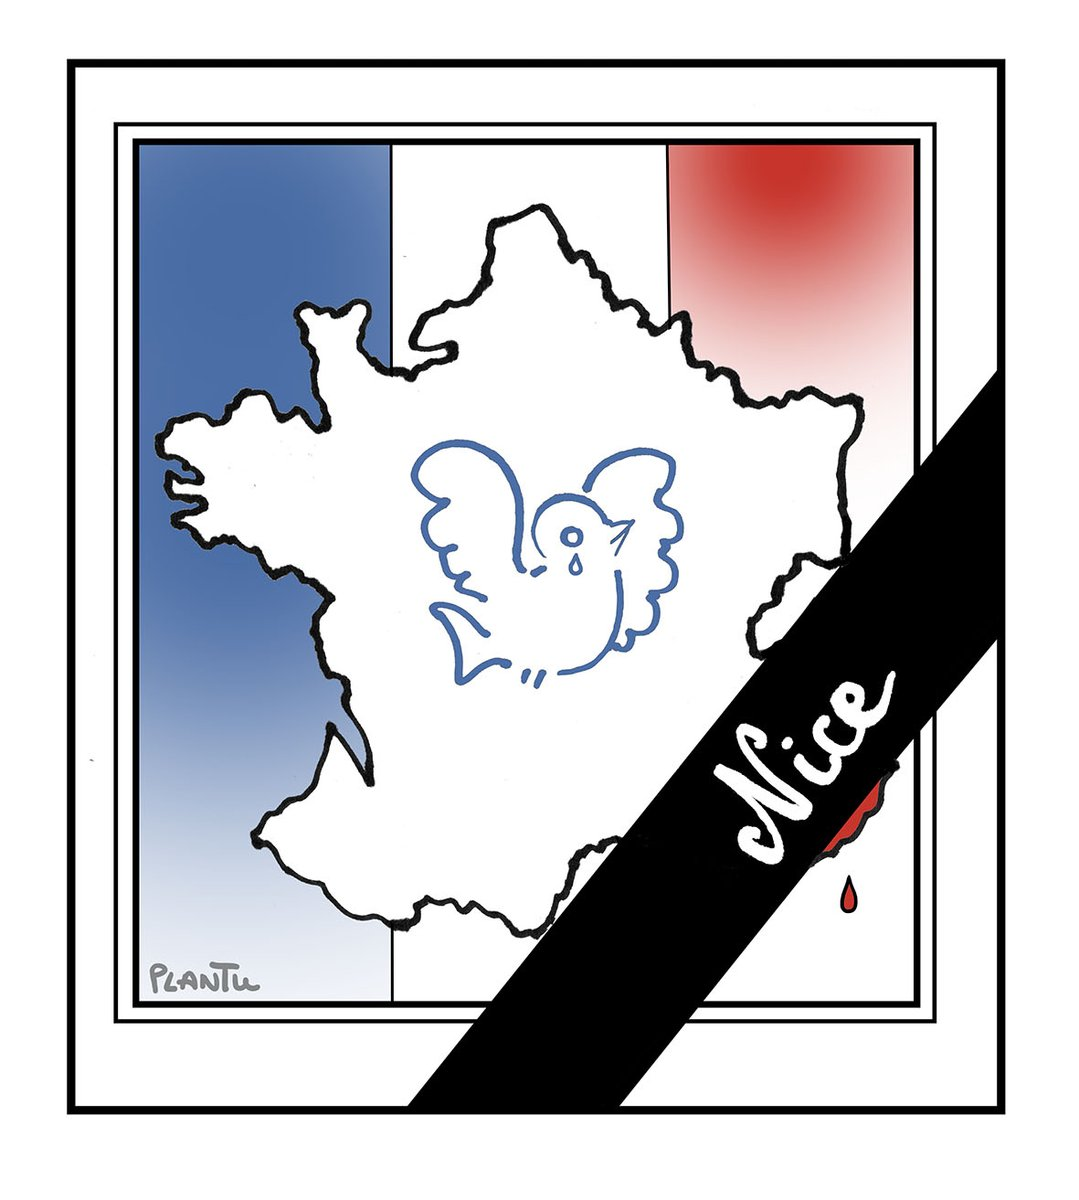 All our thoughts are with the victims of Nice and their loved ones. #unitedingrief https://t.co/aoCzZv64AA